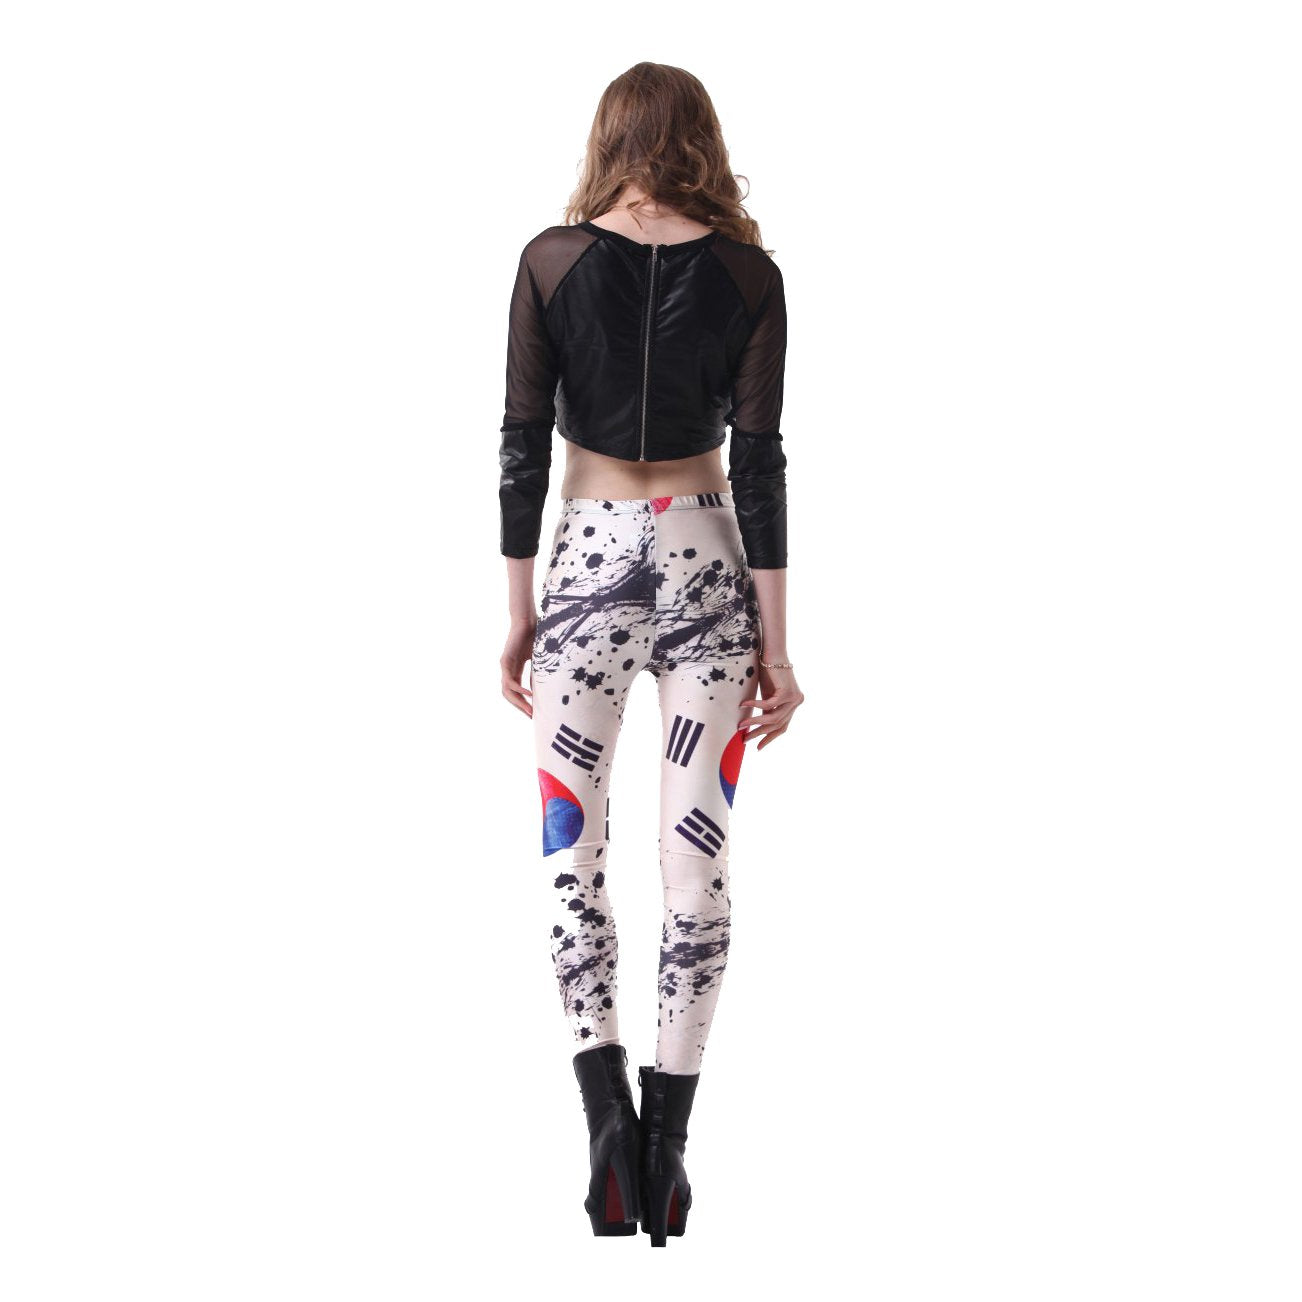 Korean Flag Digital Print Leggings